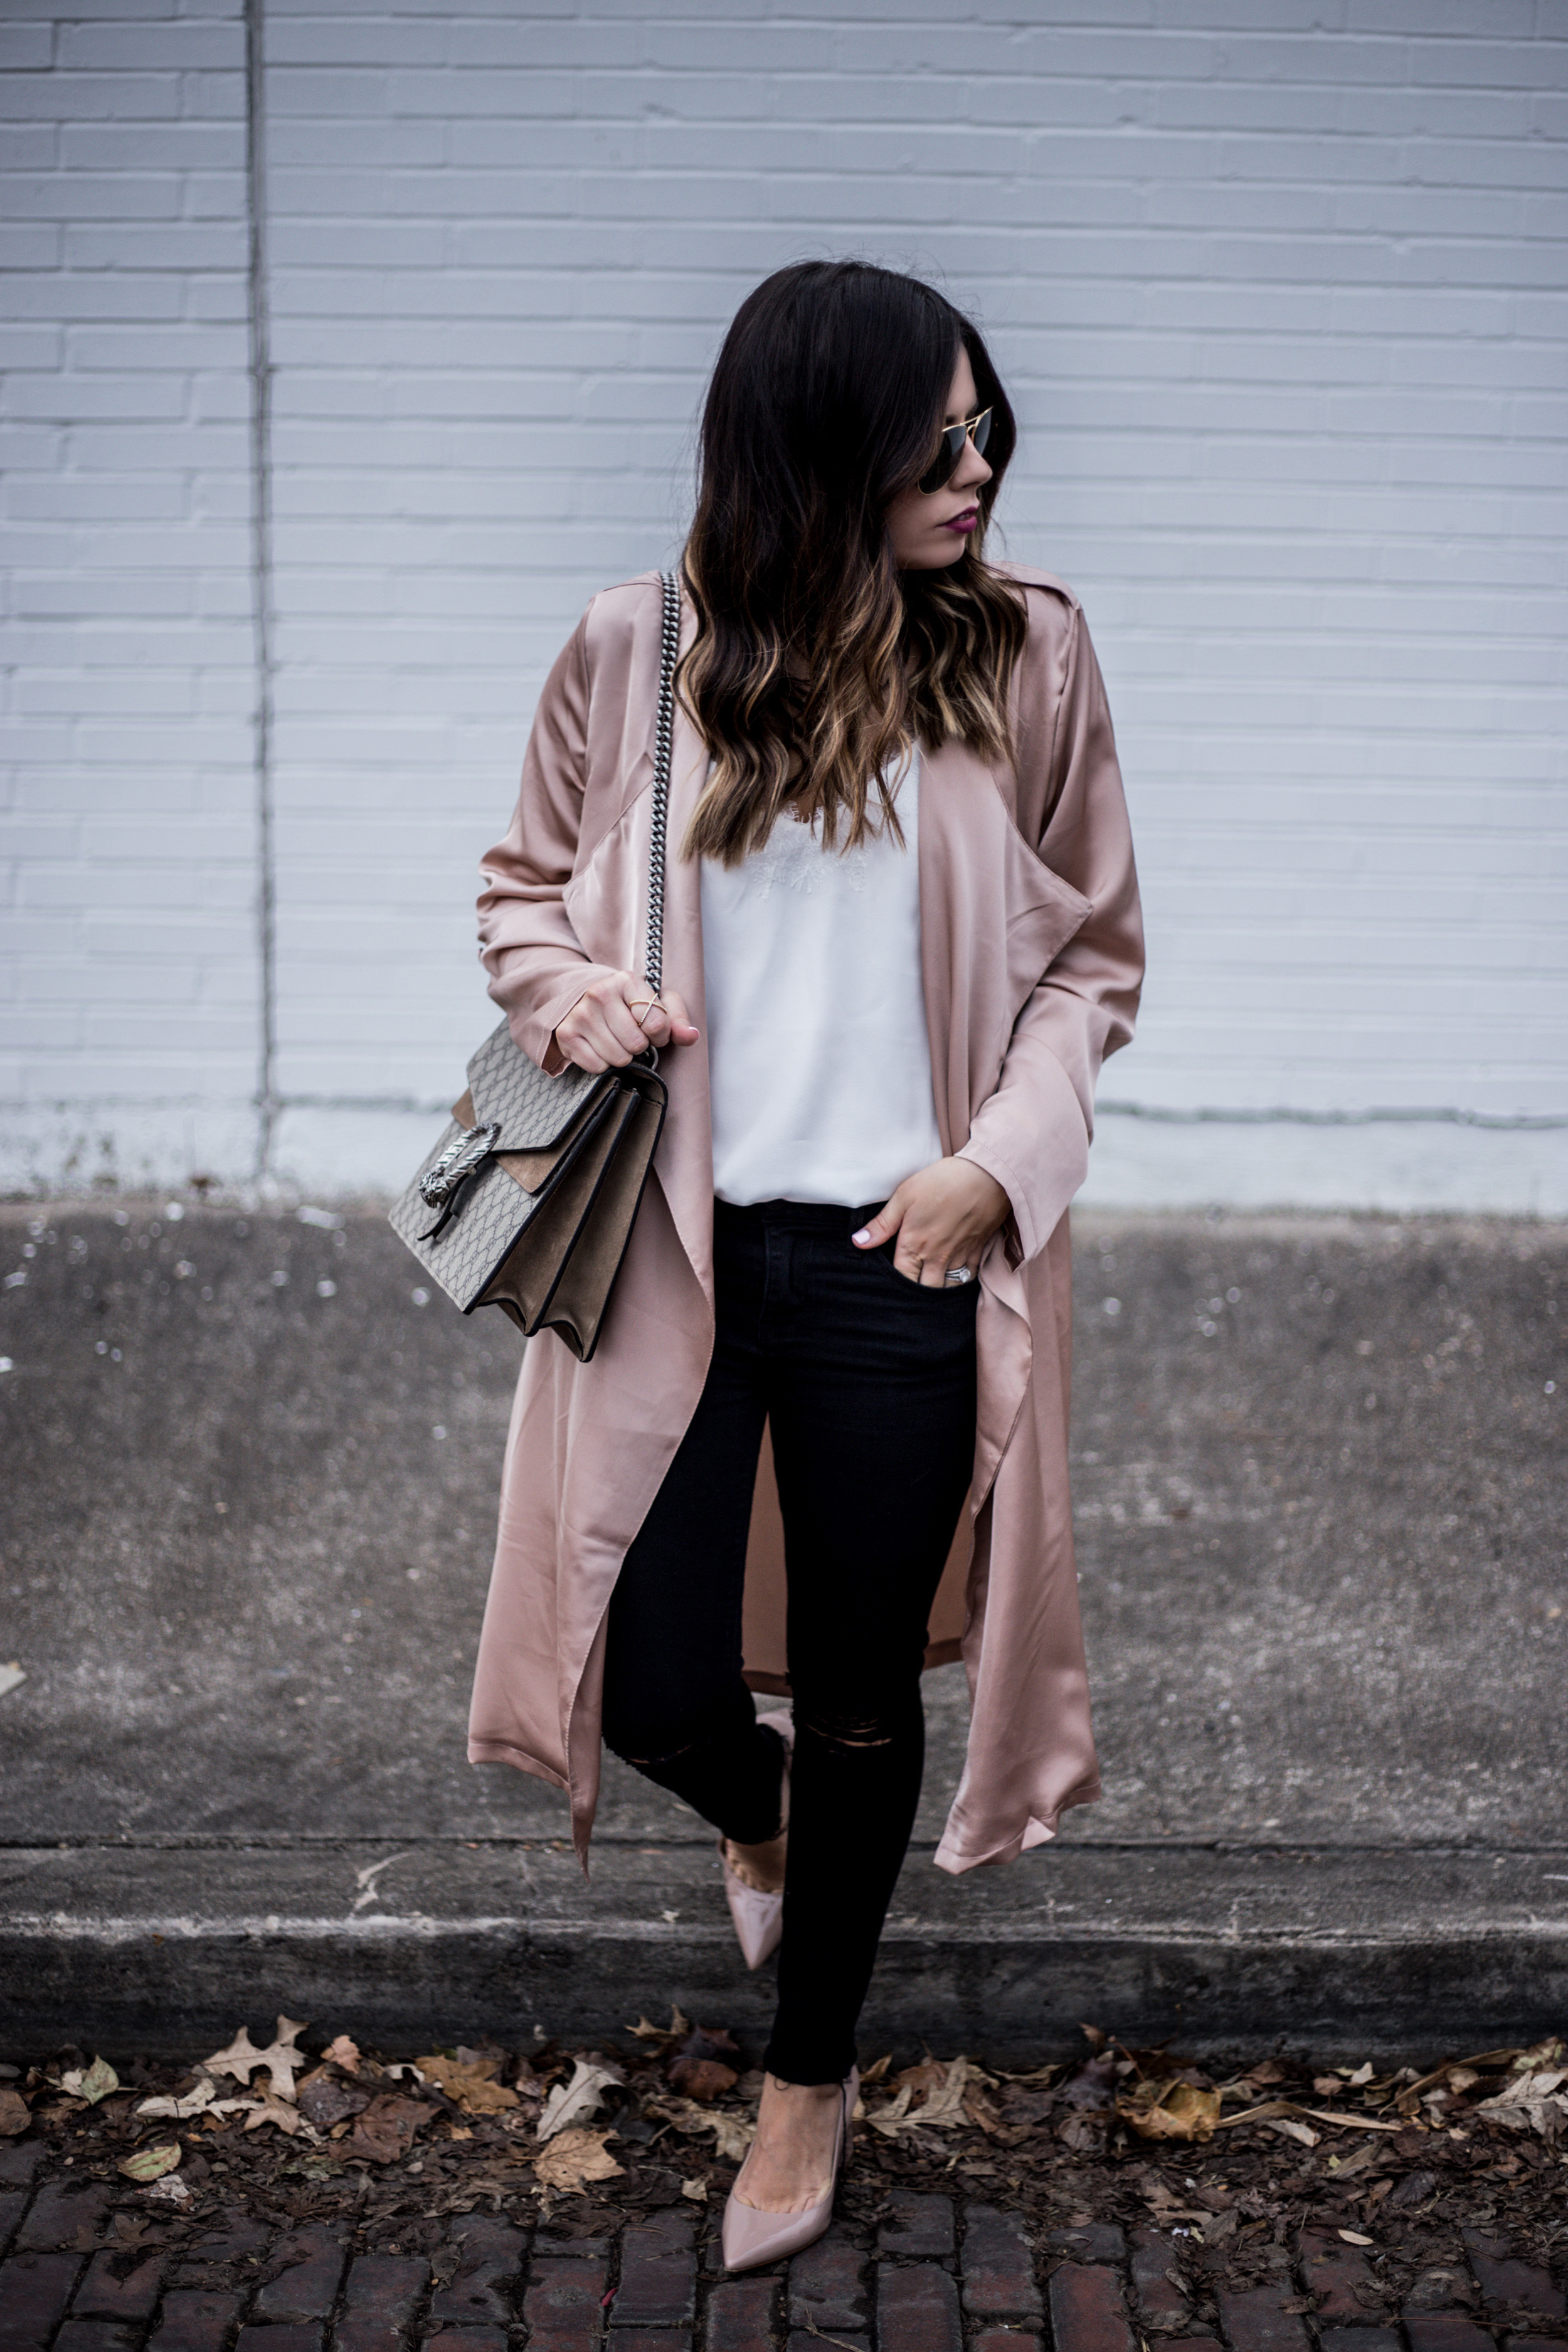 Lifestyle blogger Tiffany Jais of Flaunt and Center wearing a Satin blush duster paired with black distressed skinny jeans | what's currently trending in women's fashion 2016